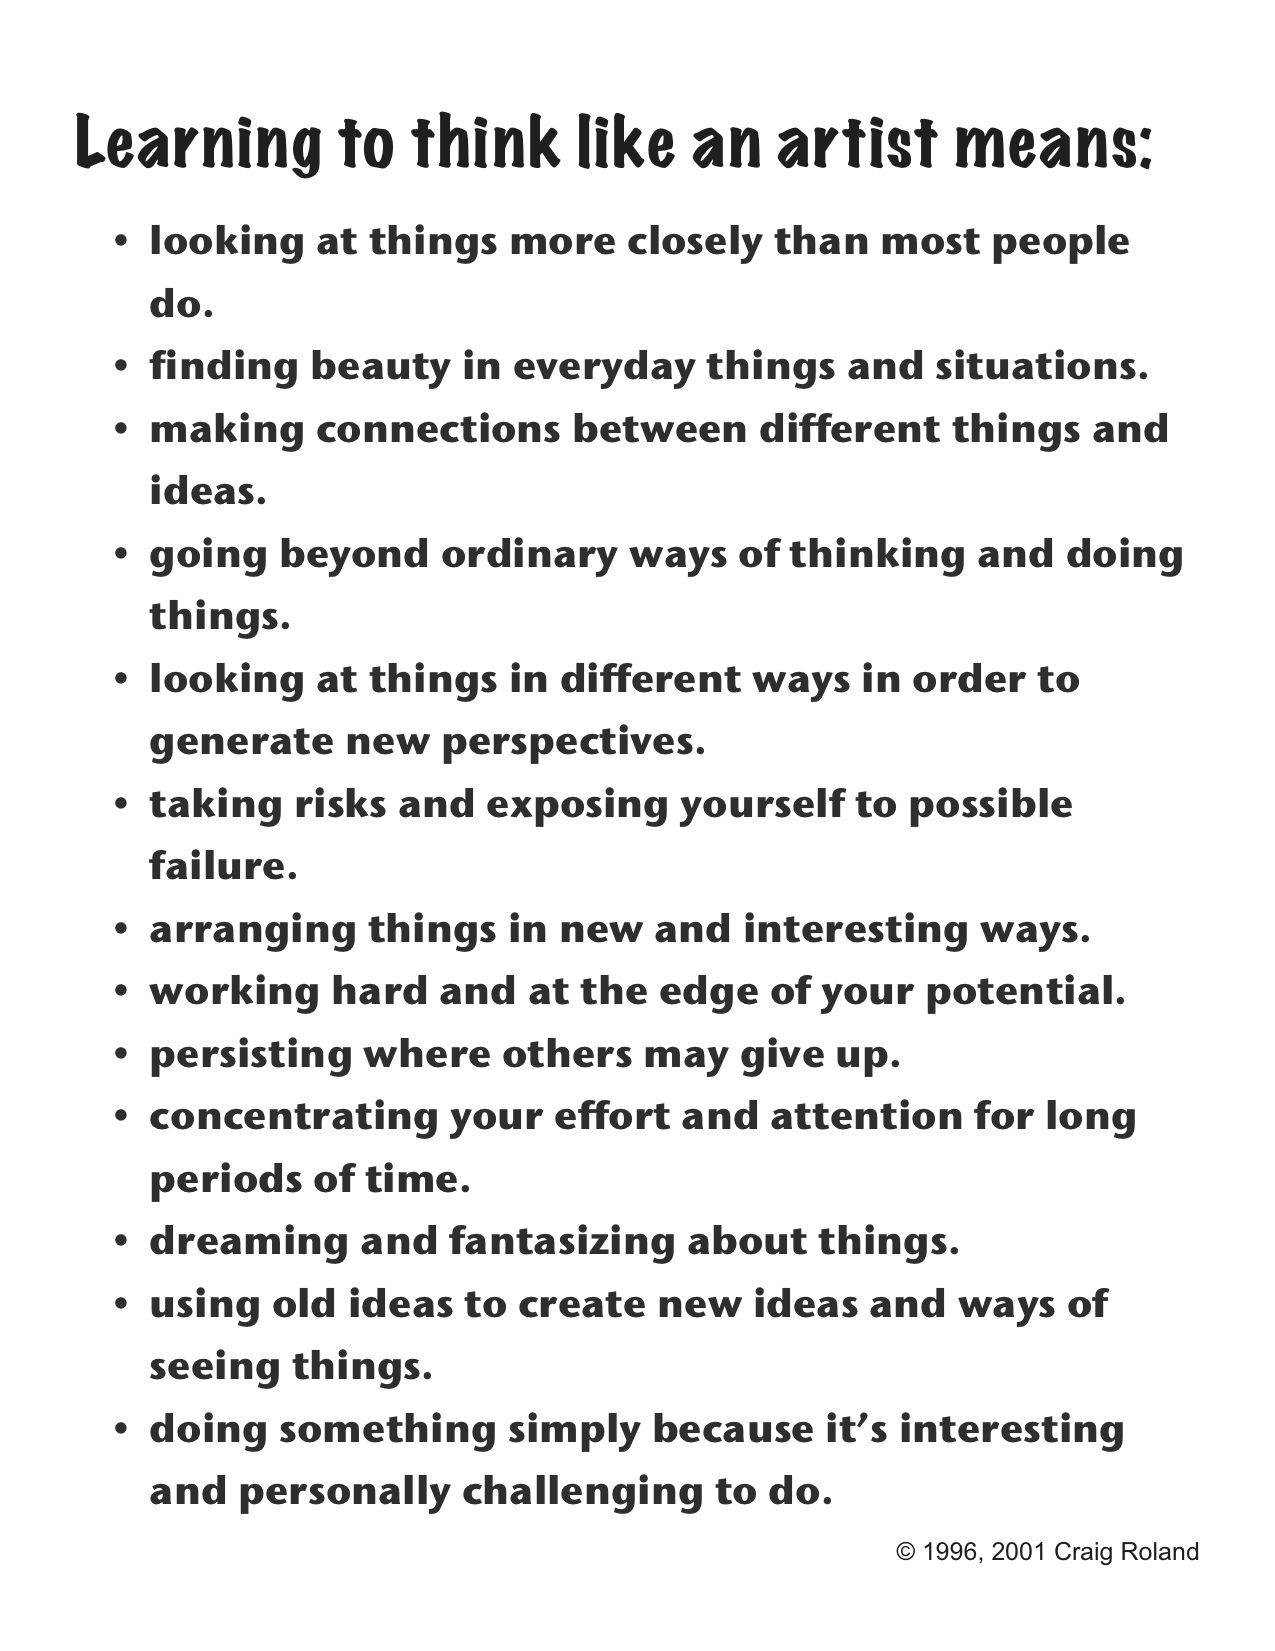 Learning to think like an artist